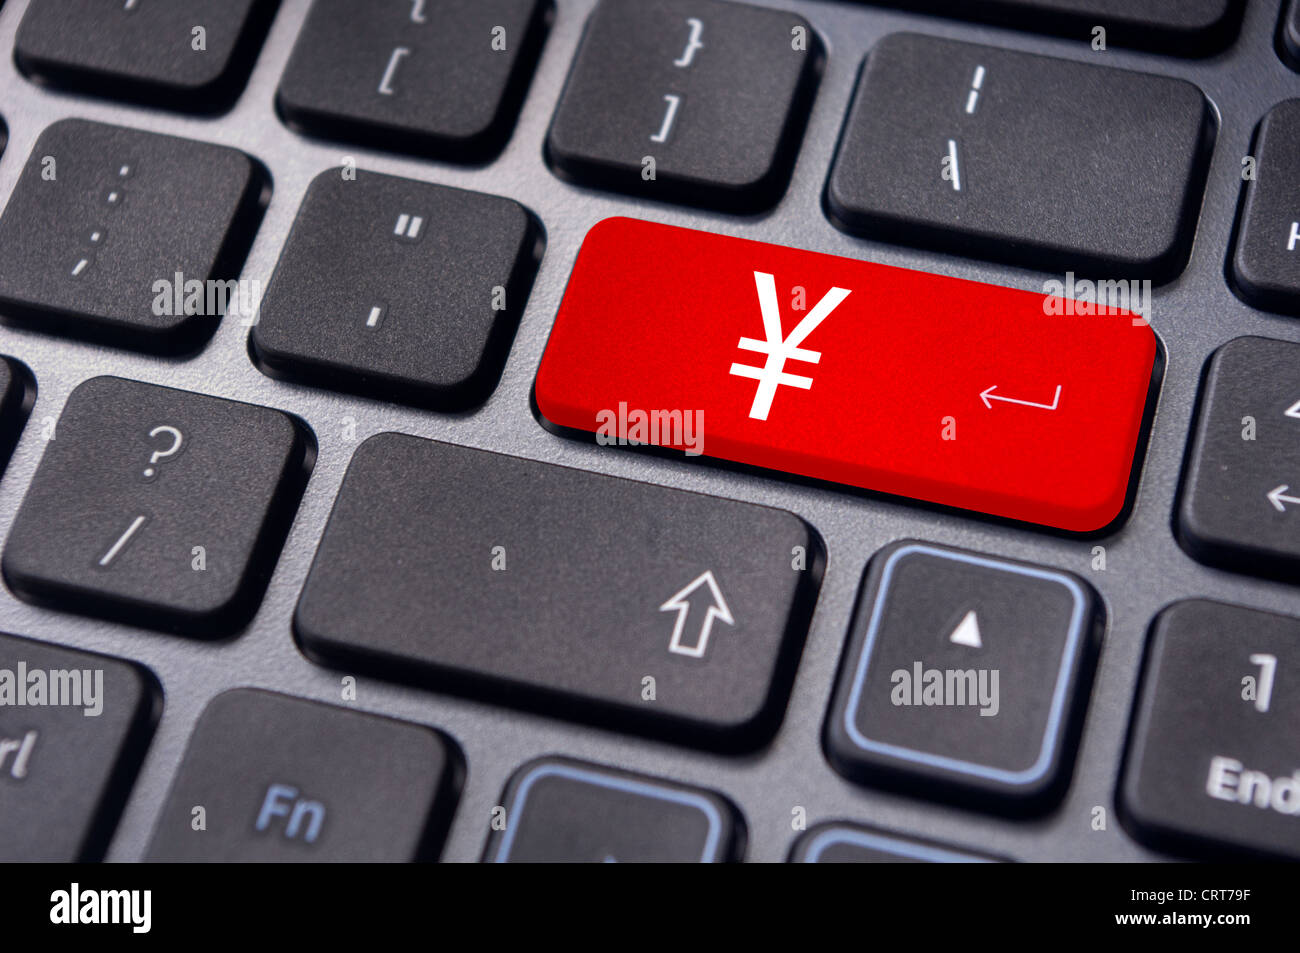 Japanese Yen Symbol On Keyboard To Convey Forex Trading Or Online